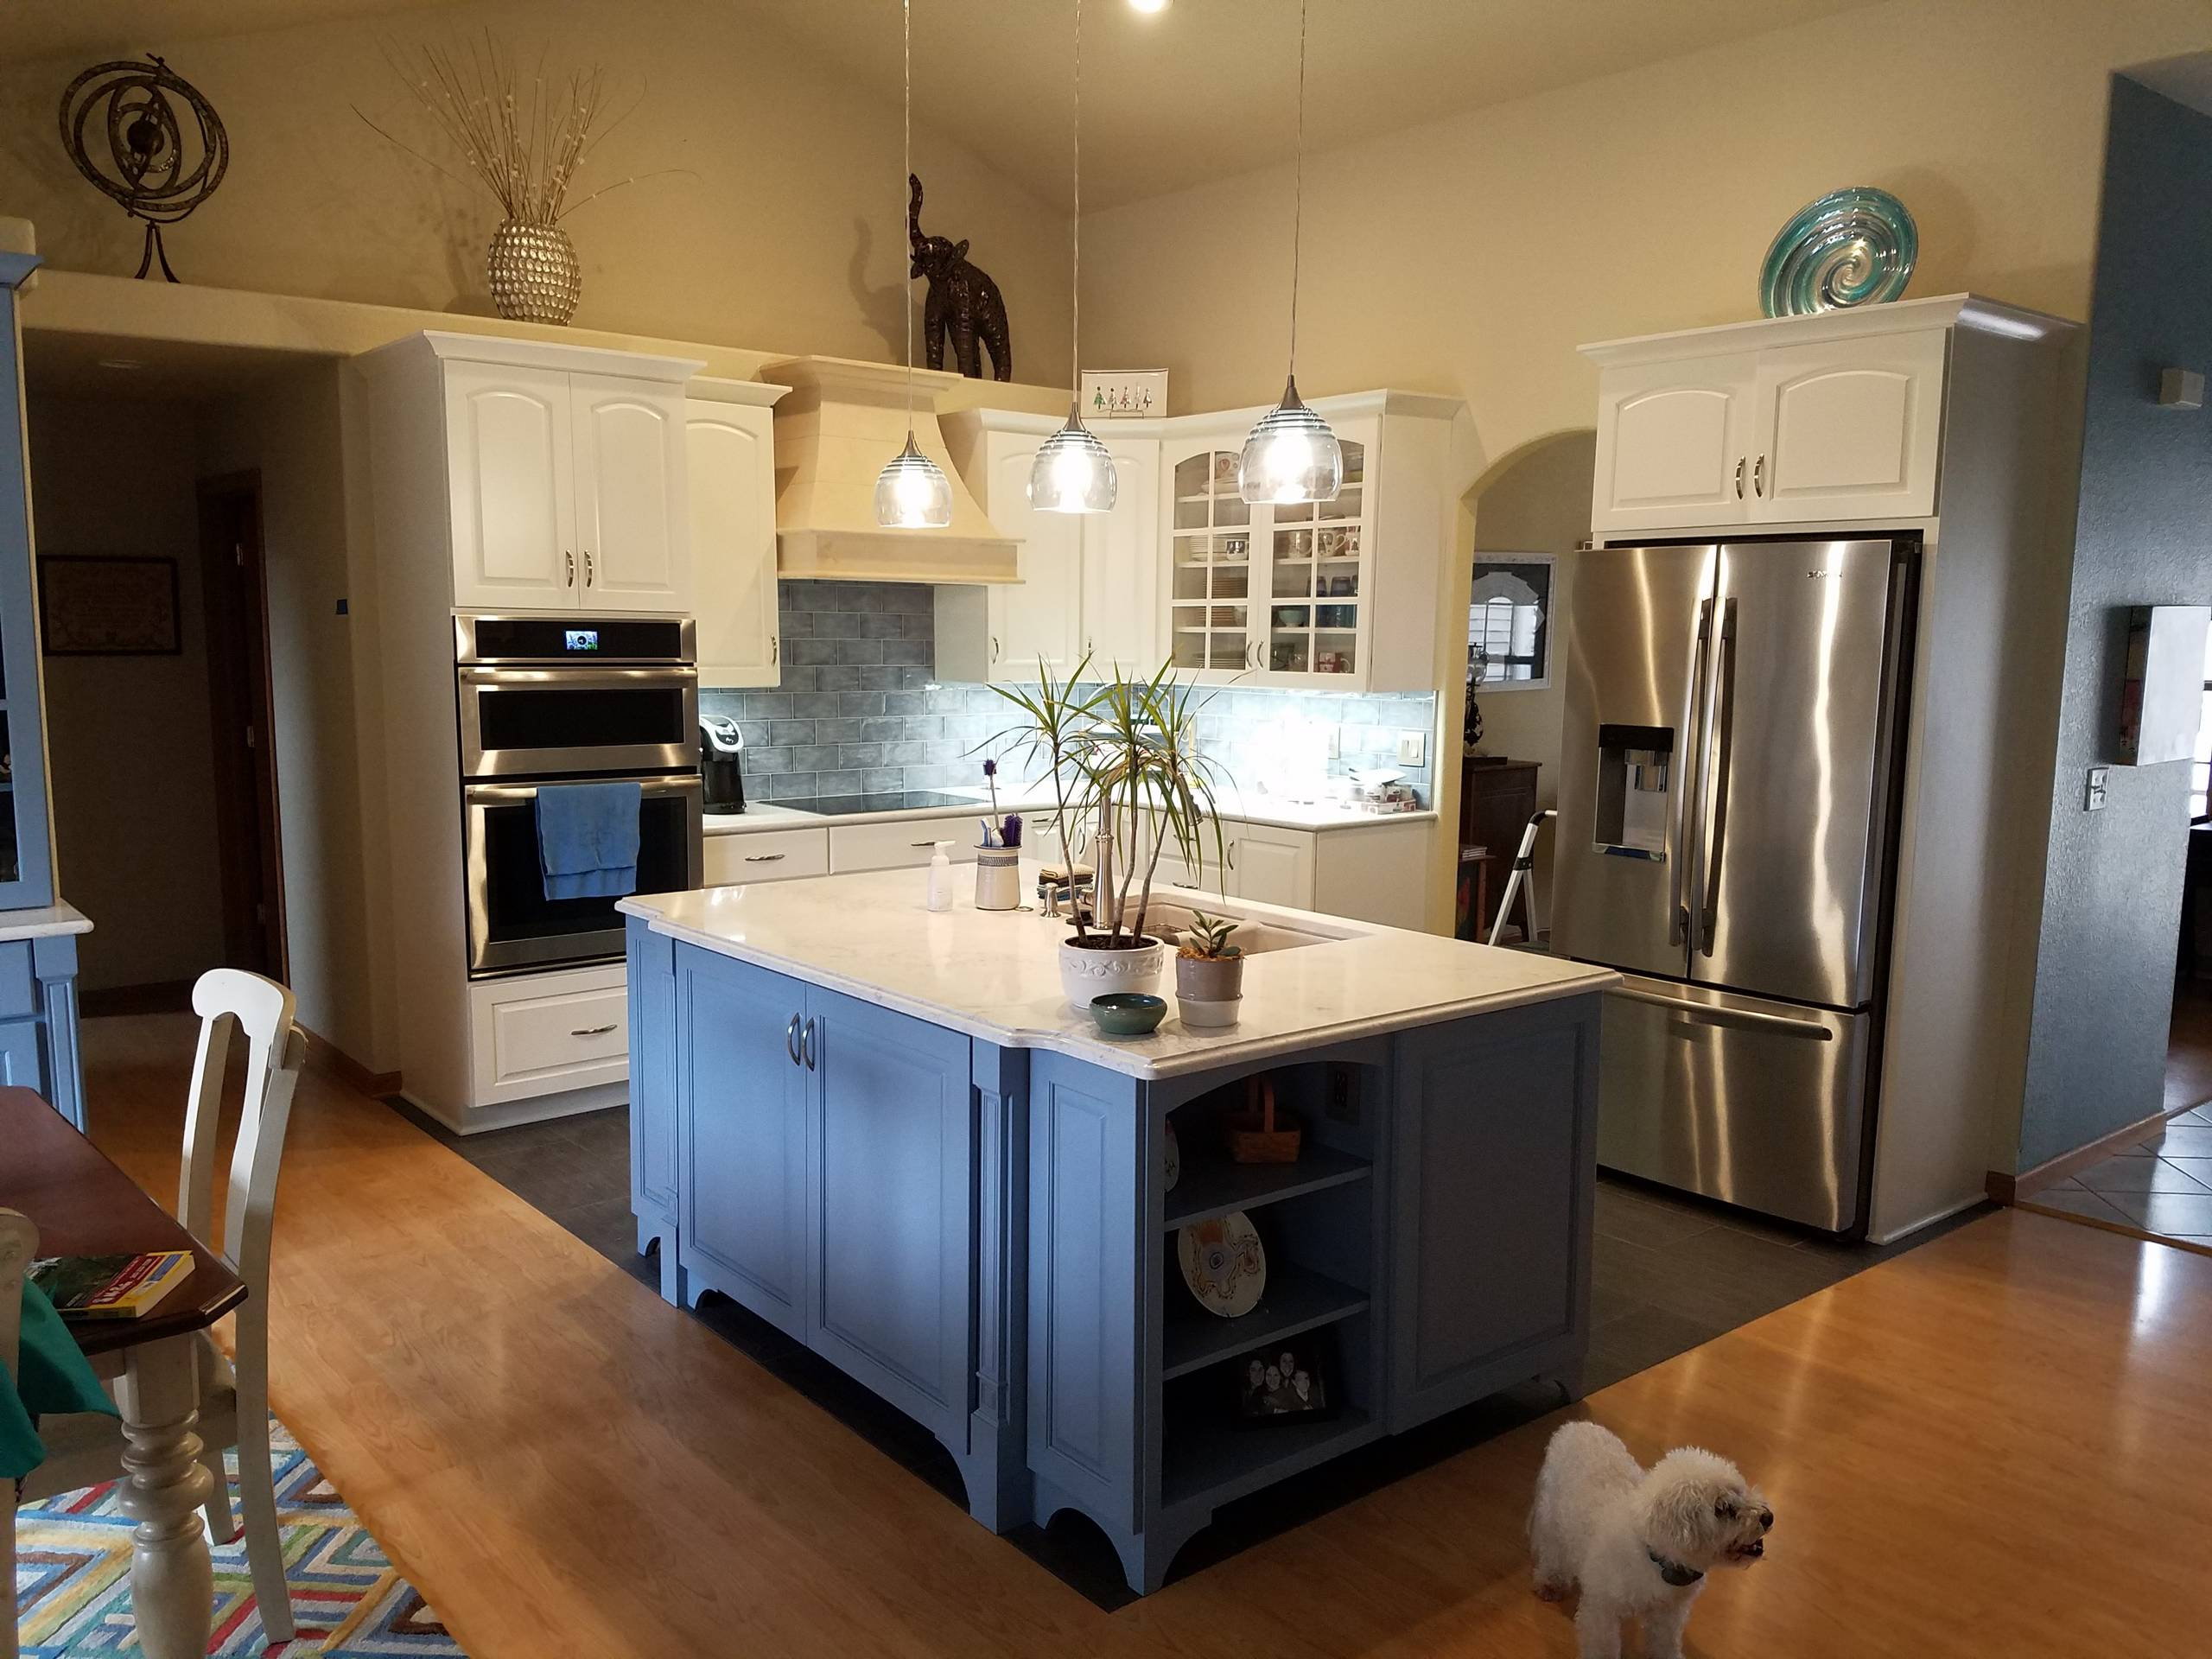 Kitchen with painted cabinetry